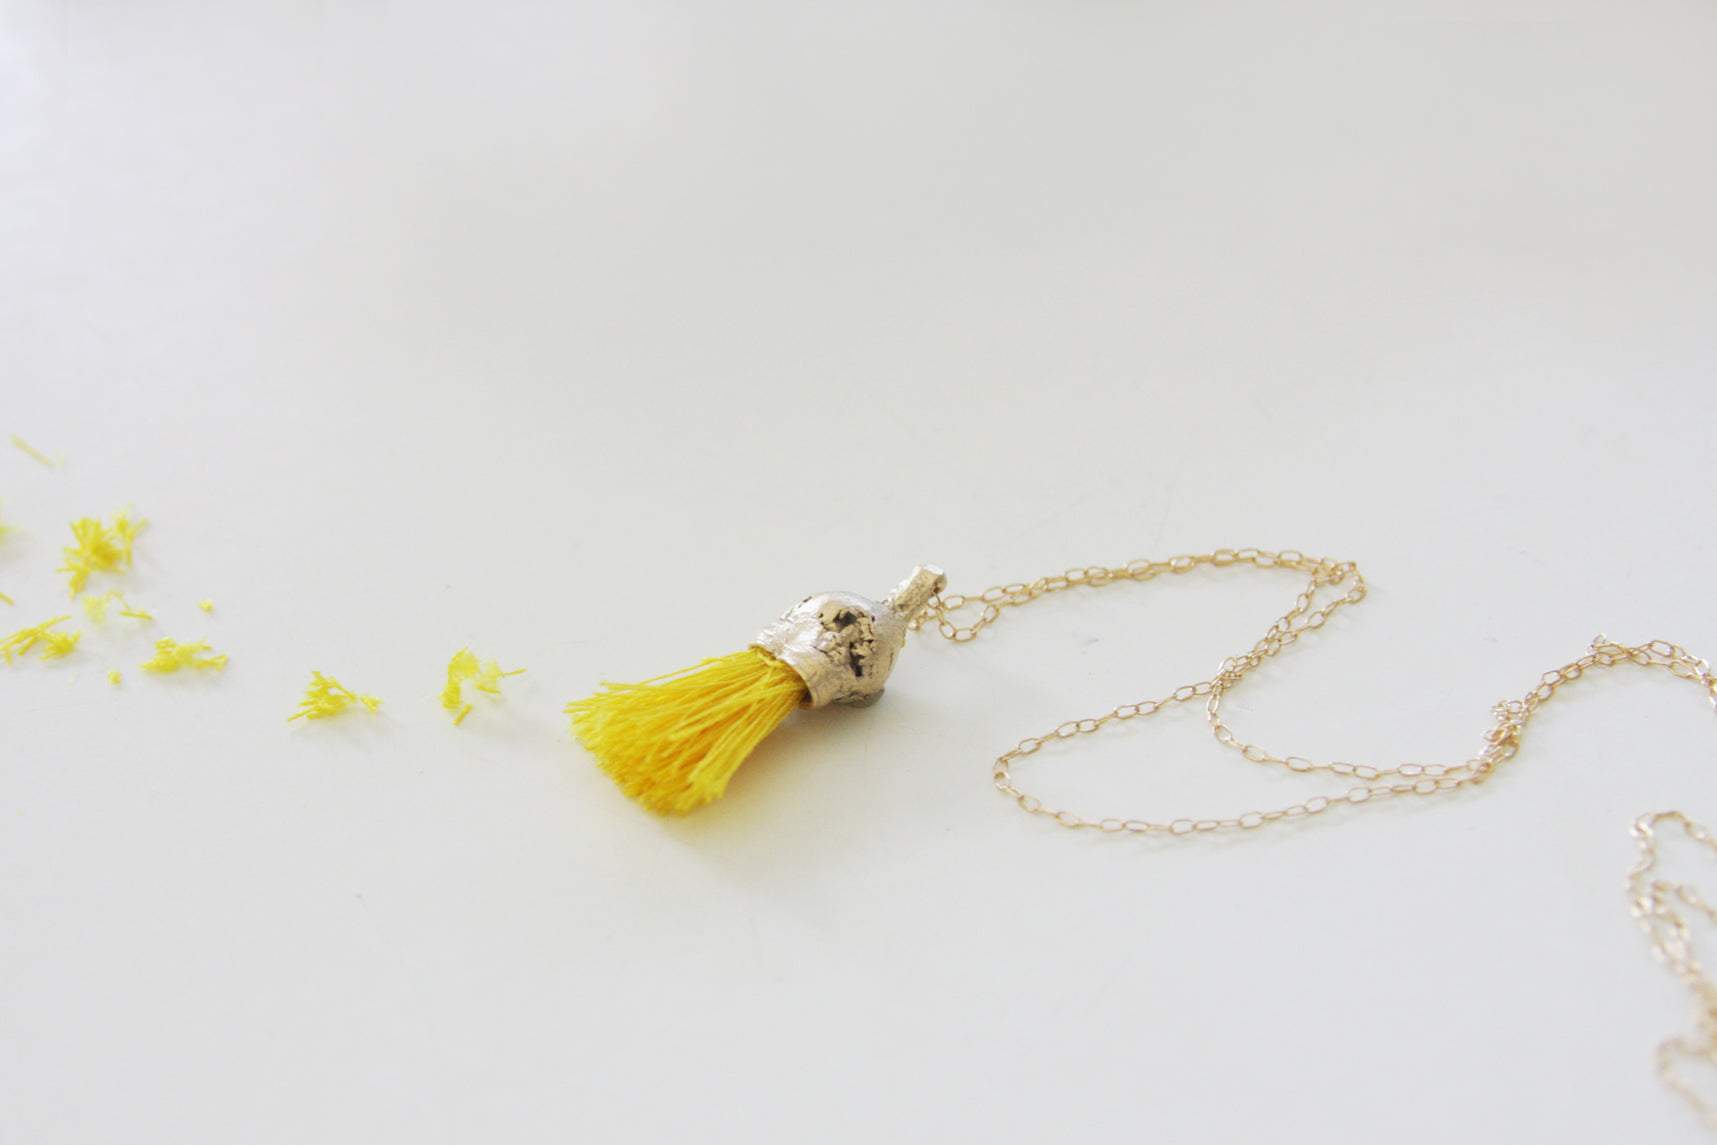 Unique Inspired By Nature Gold necklace